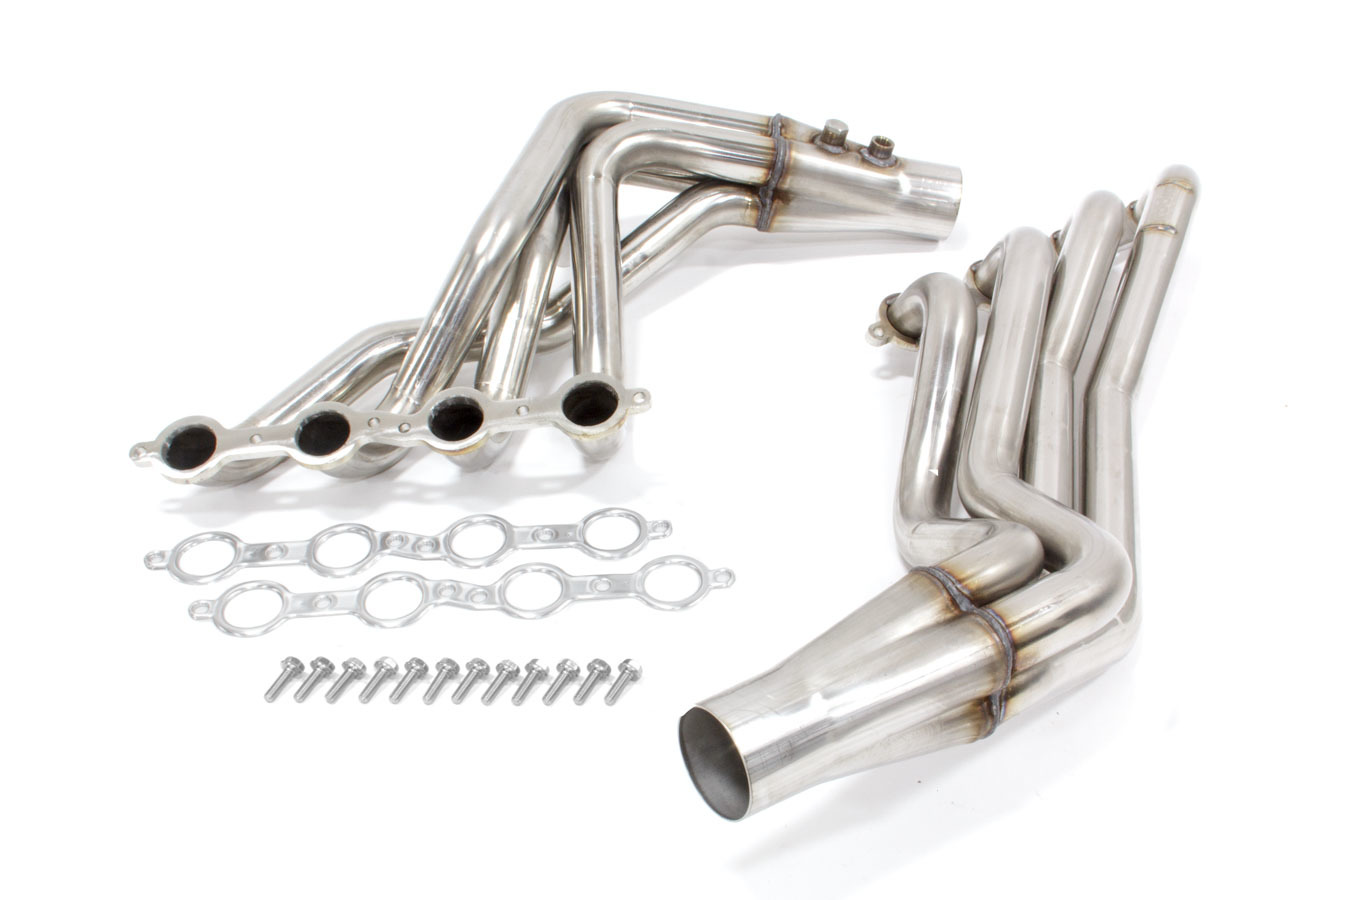 Headers Longtube 1-7/8in 98-02 Camaro w/LS Motor